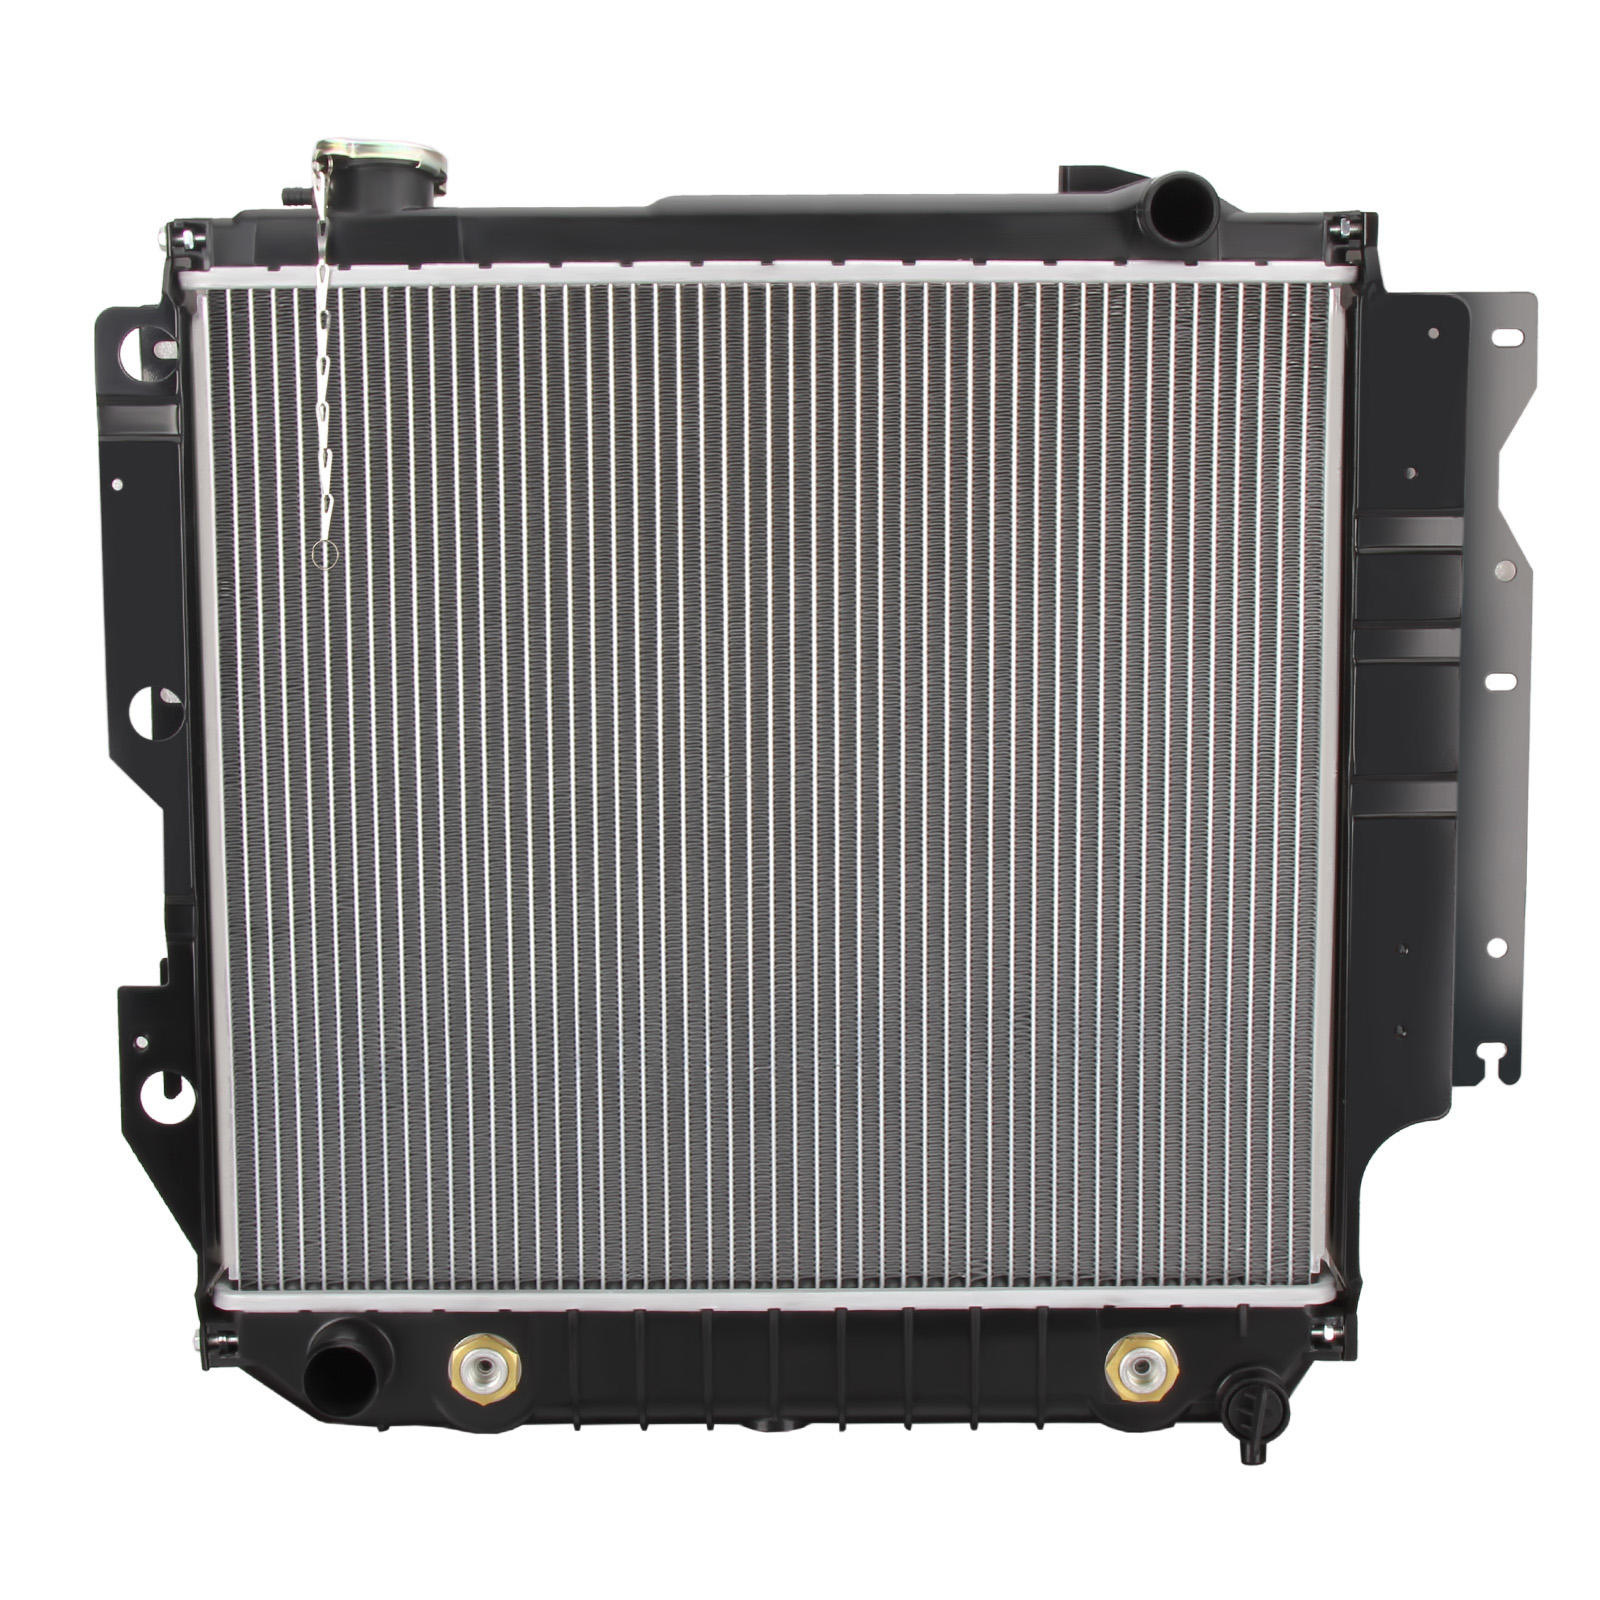 Car Radiator For DODGE  Jeep Wrangler TJ YJ SJ Open Off-Road Vehicle 4.0 AWD Petrol 4.0L 6cyl 124kW 3960cc 124kW (Petrol)